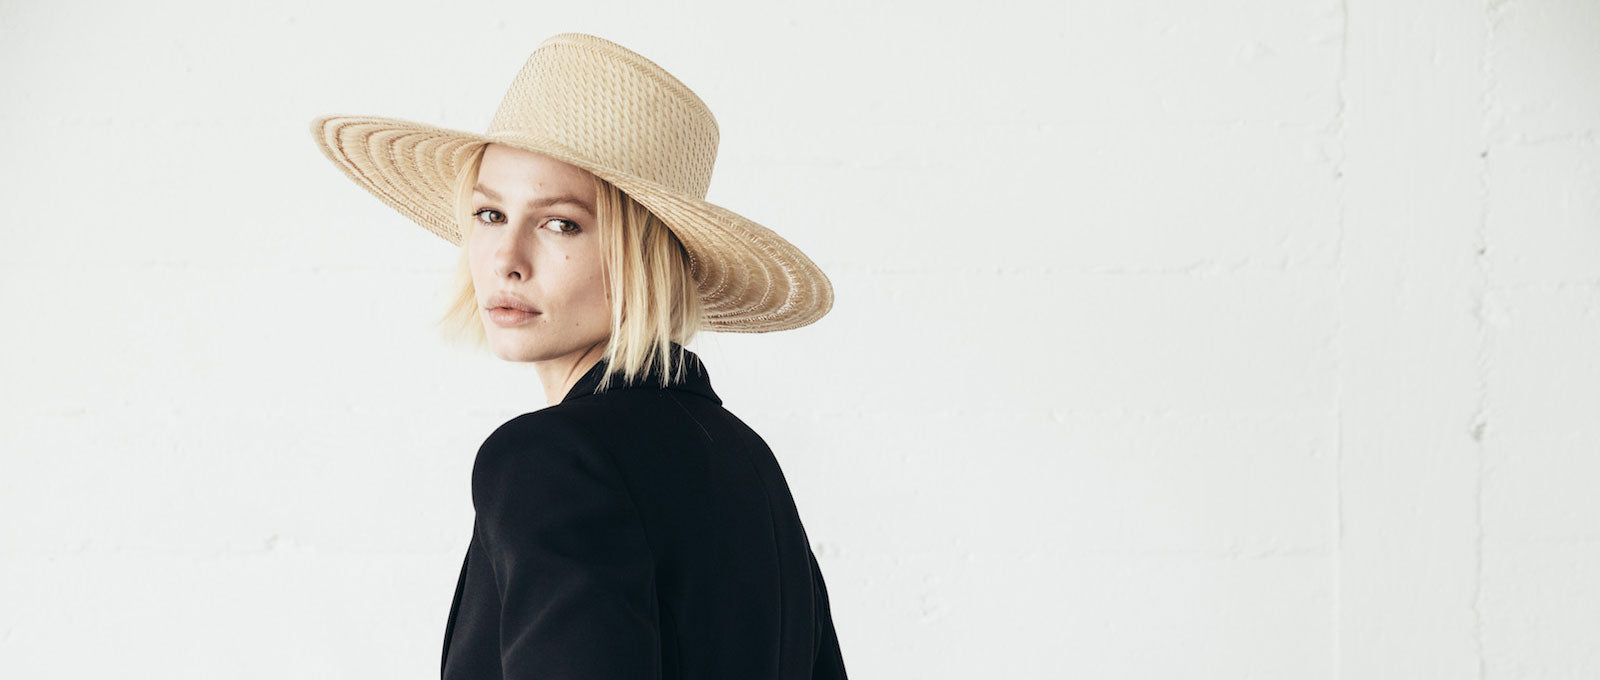 f4b99bbe56e183 ... Janessa Leone Summer Women's Hats Summer Spring Hats made for the beach  and traveling | Wide ...